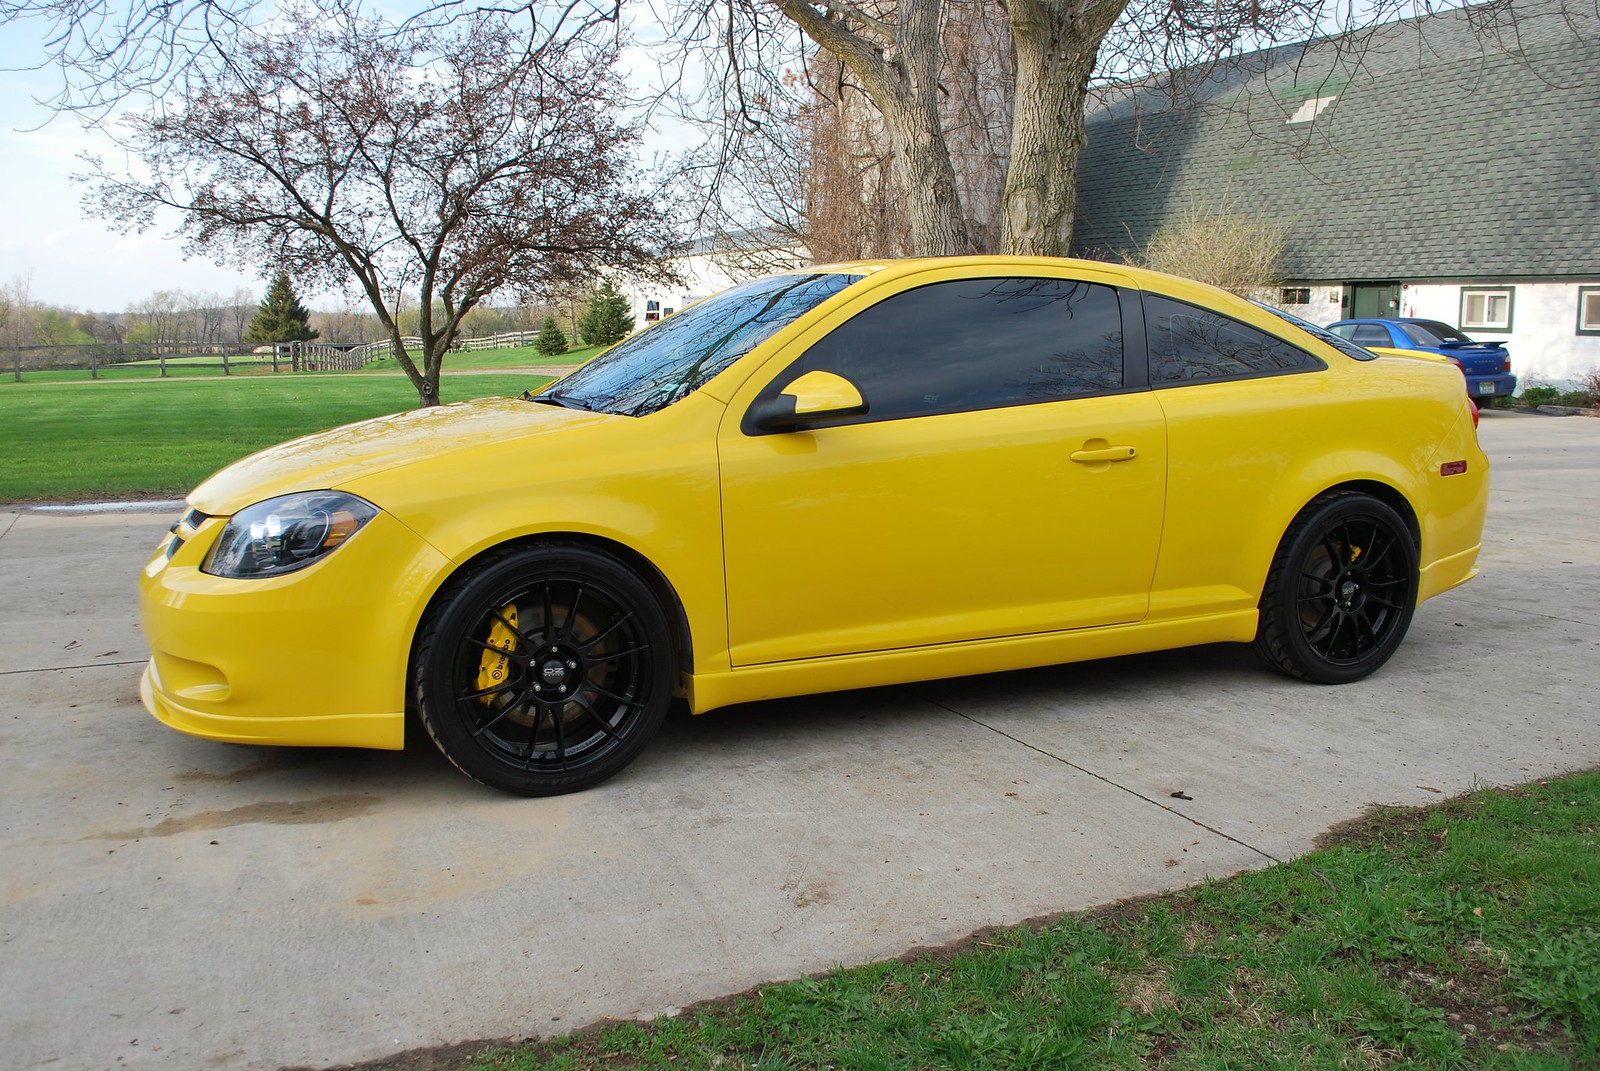 for sale 2009 cobalt ss turbo in rally yellow cobalt ss network. Black Bedroom Furniture Sets. Home Design Ideas